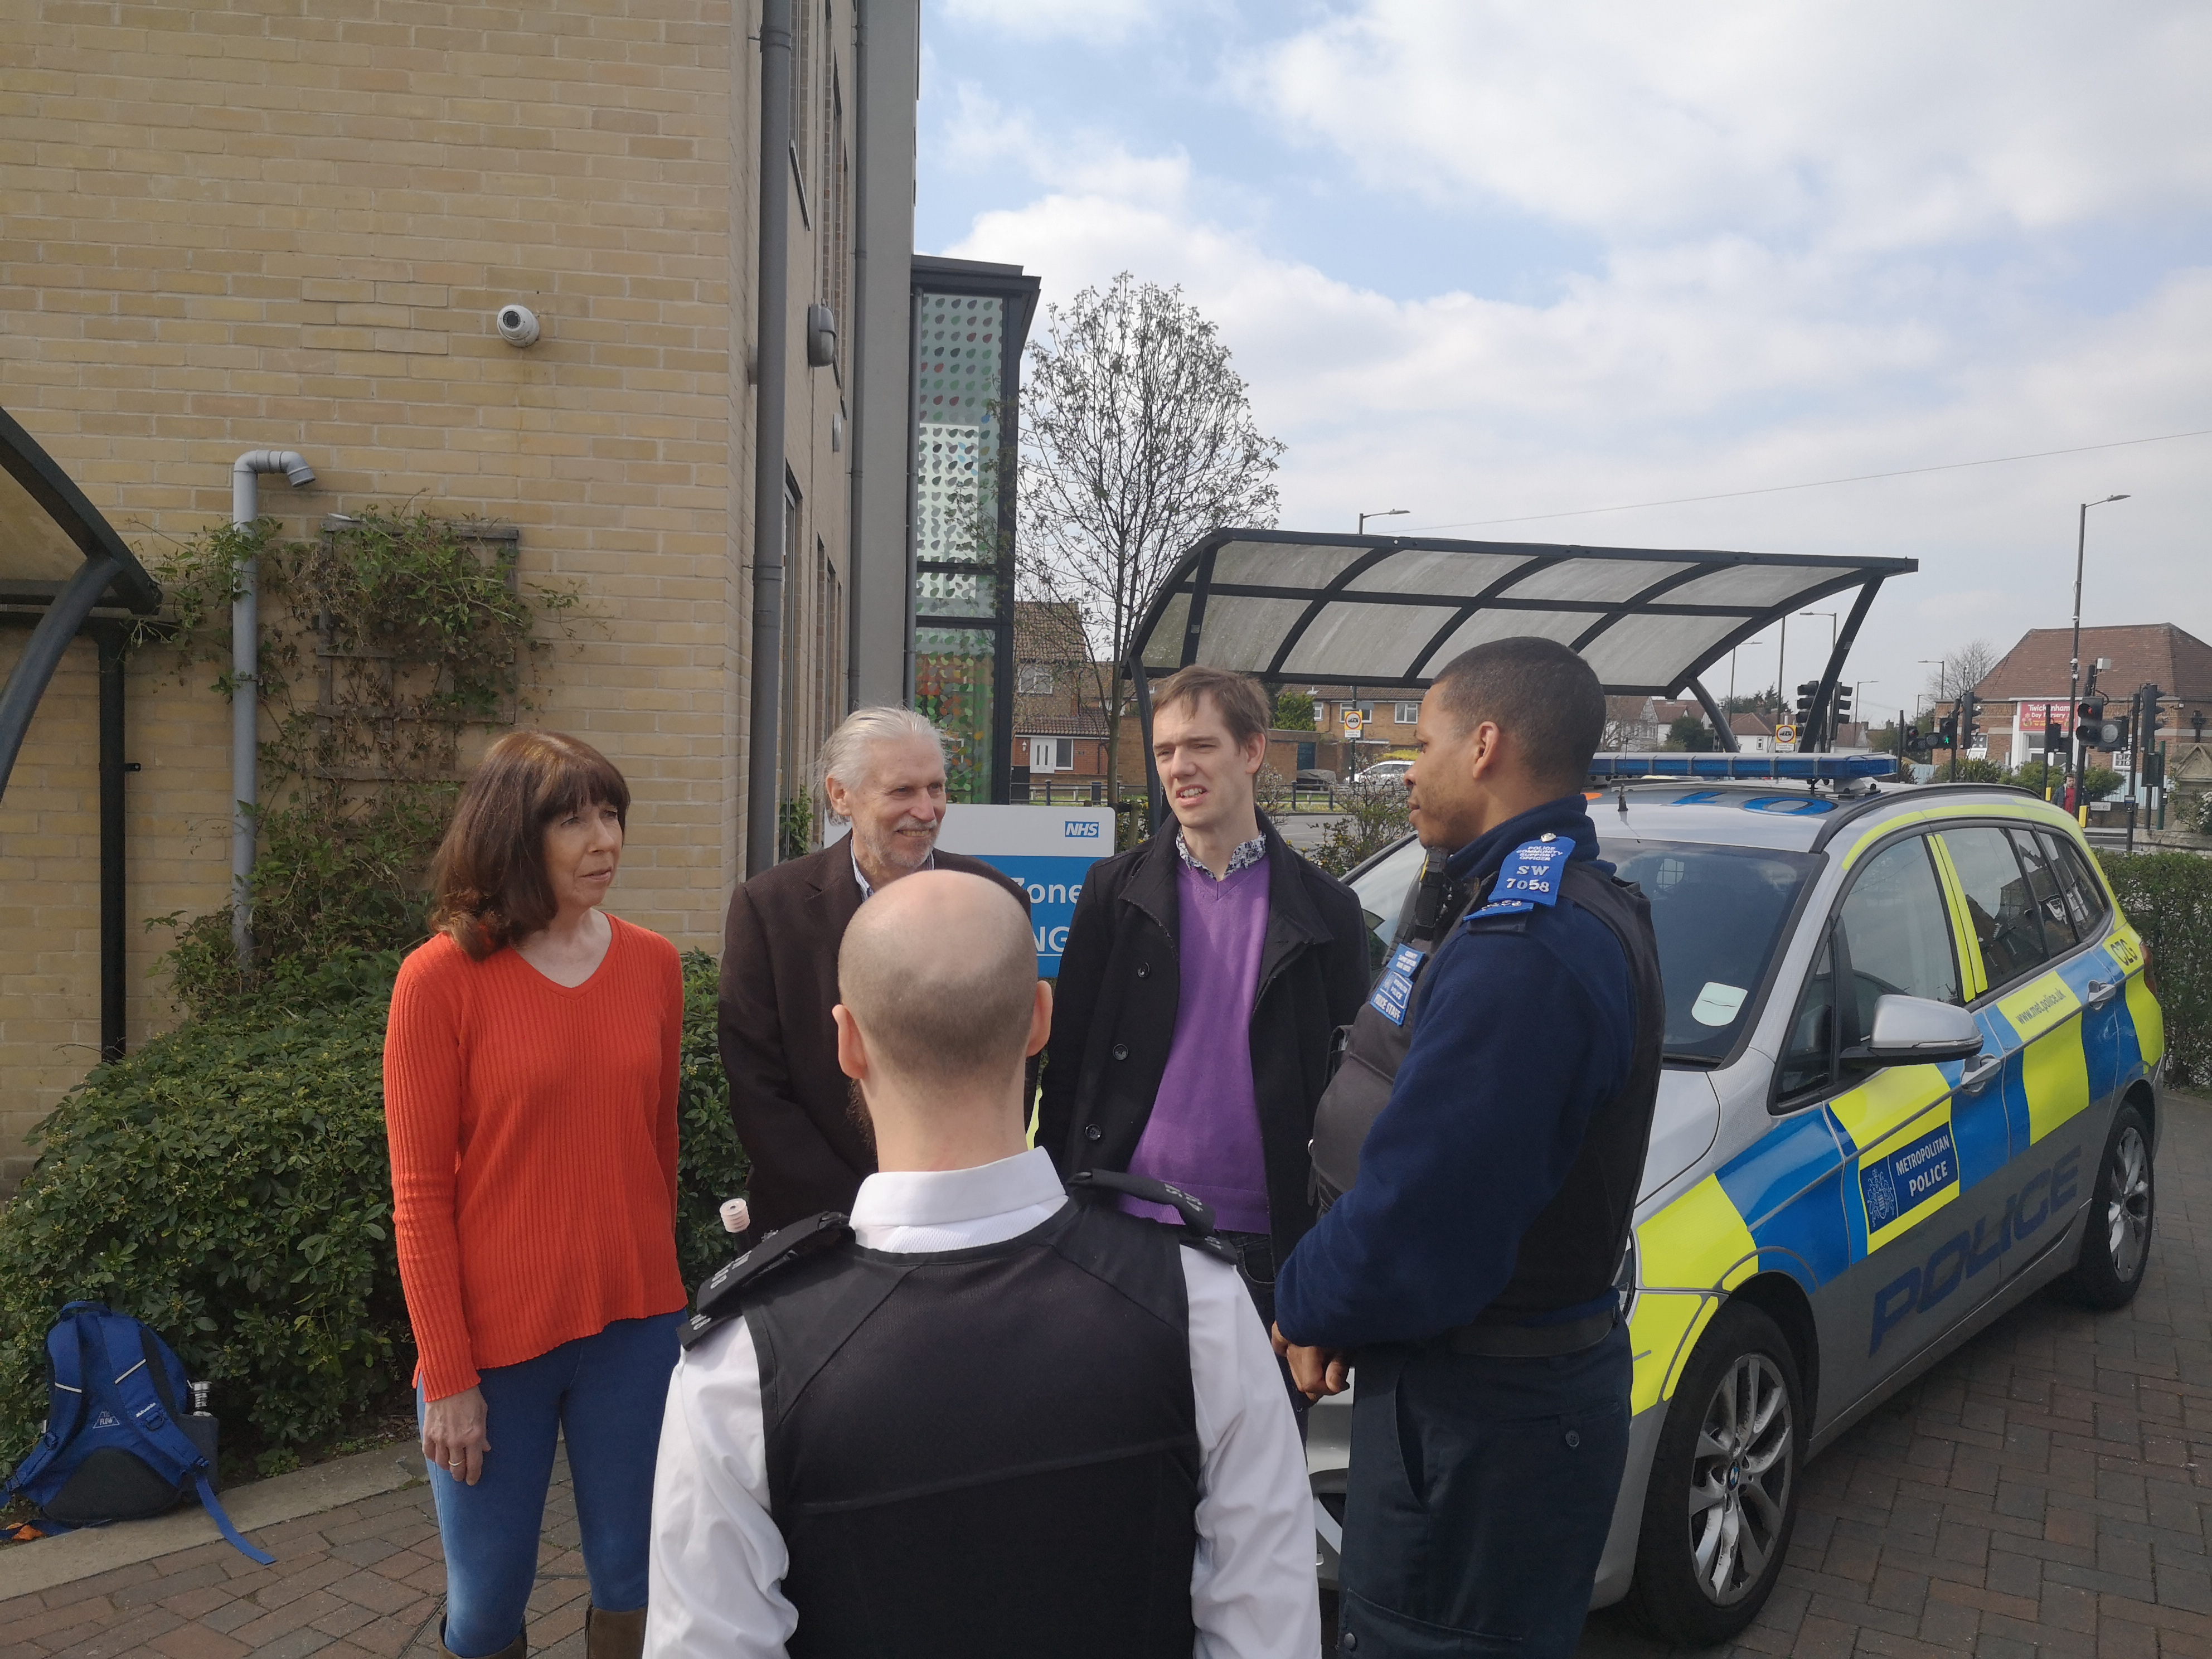 Lib Dem Councillors talking to the local Police Team